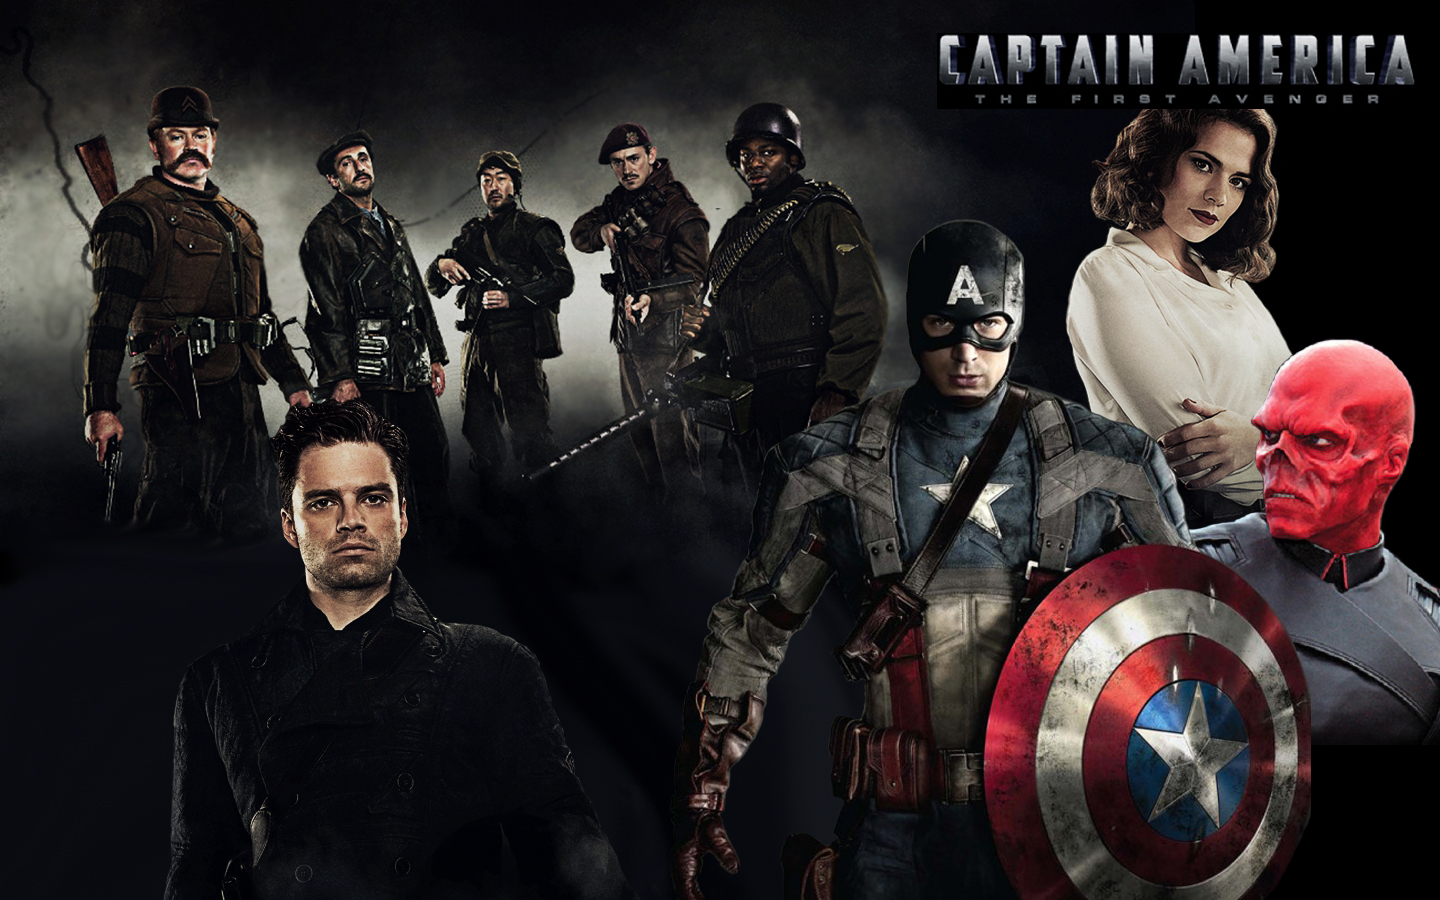 Captain America Images Captain America First Avenger Hd Wallpaper